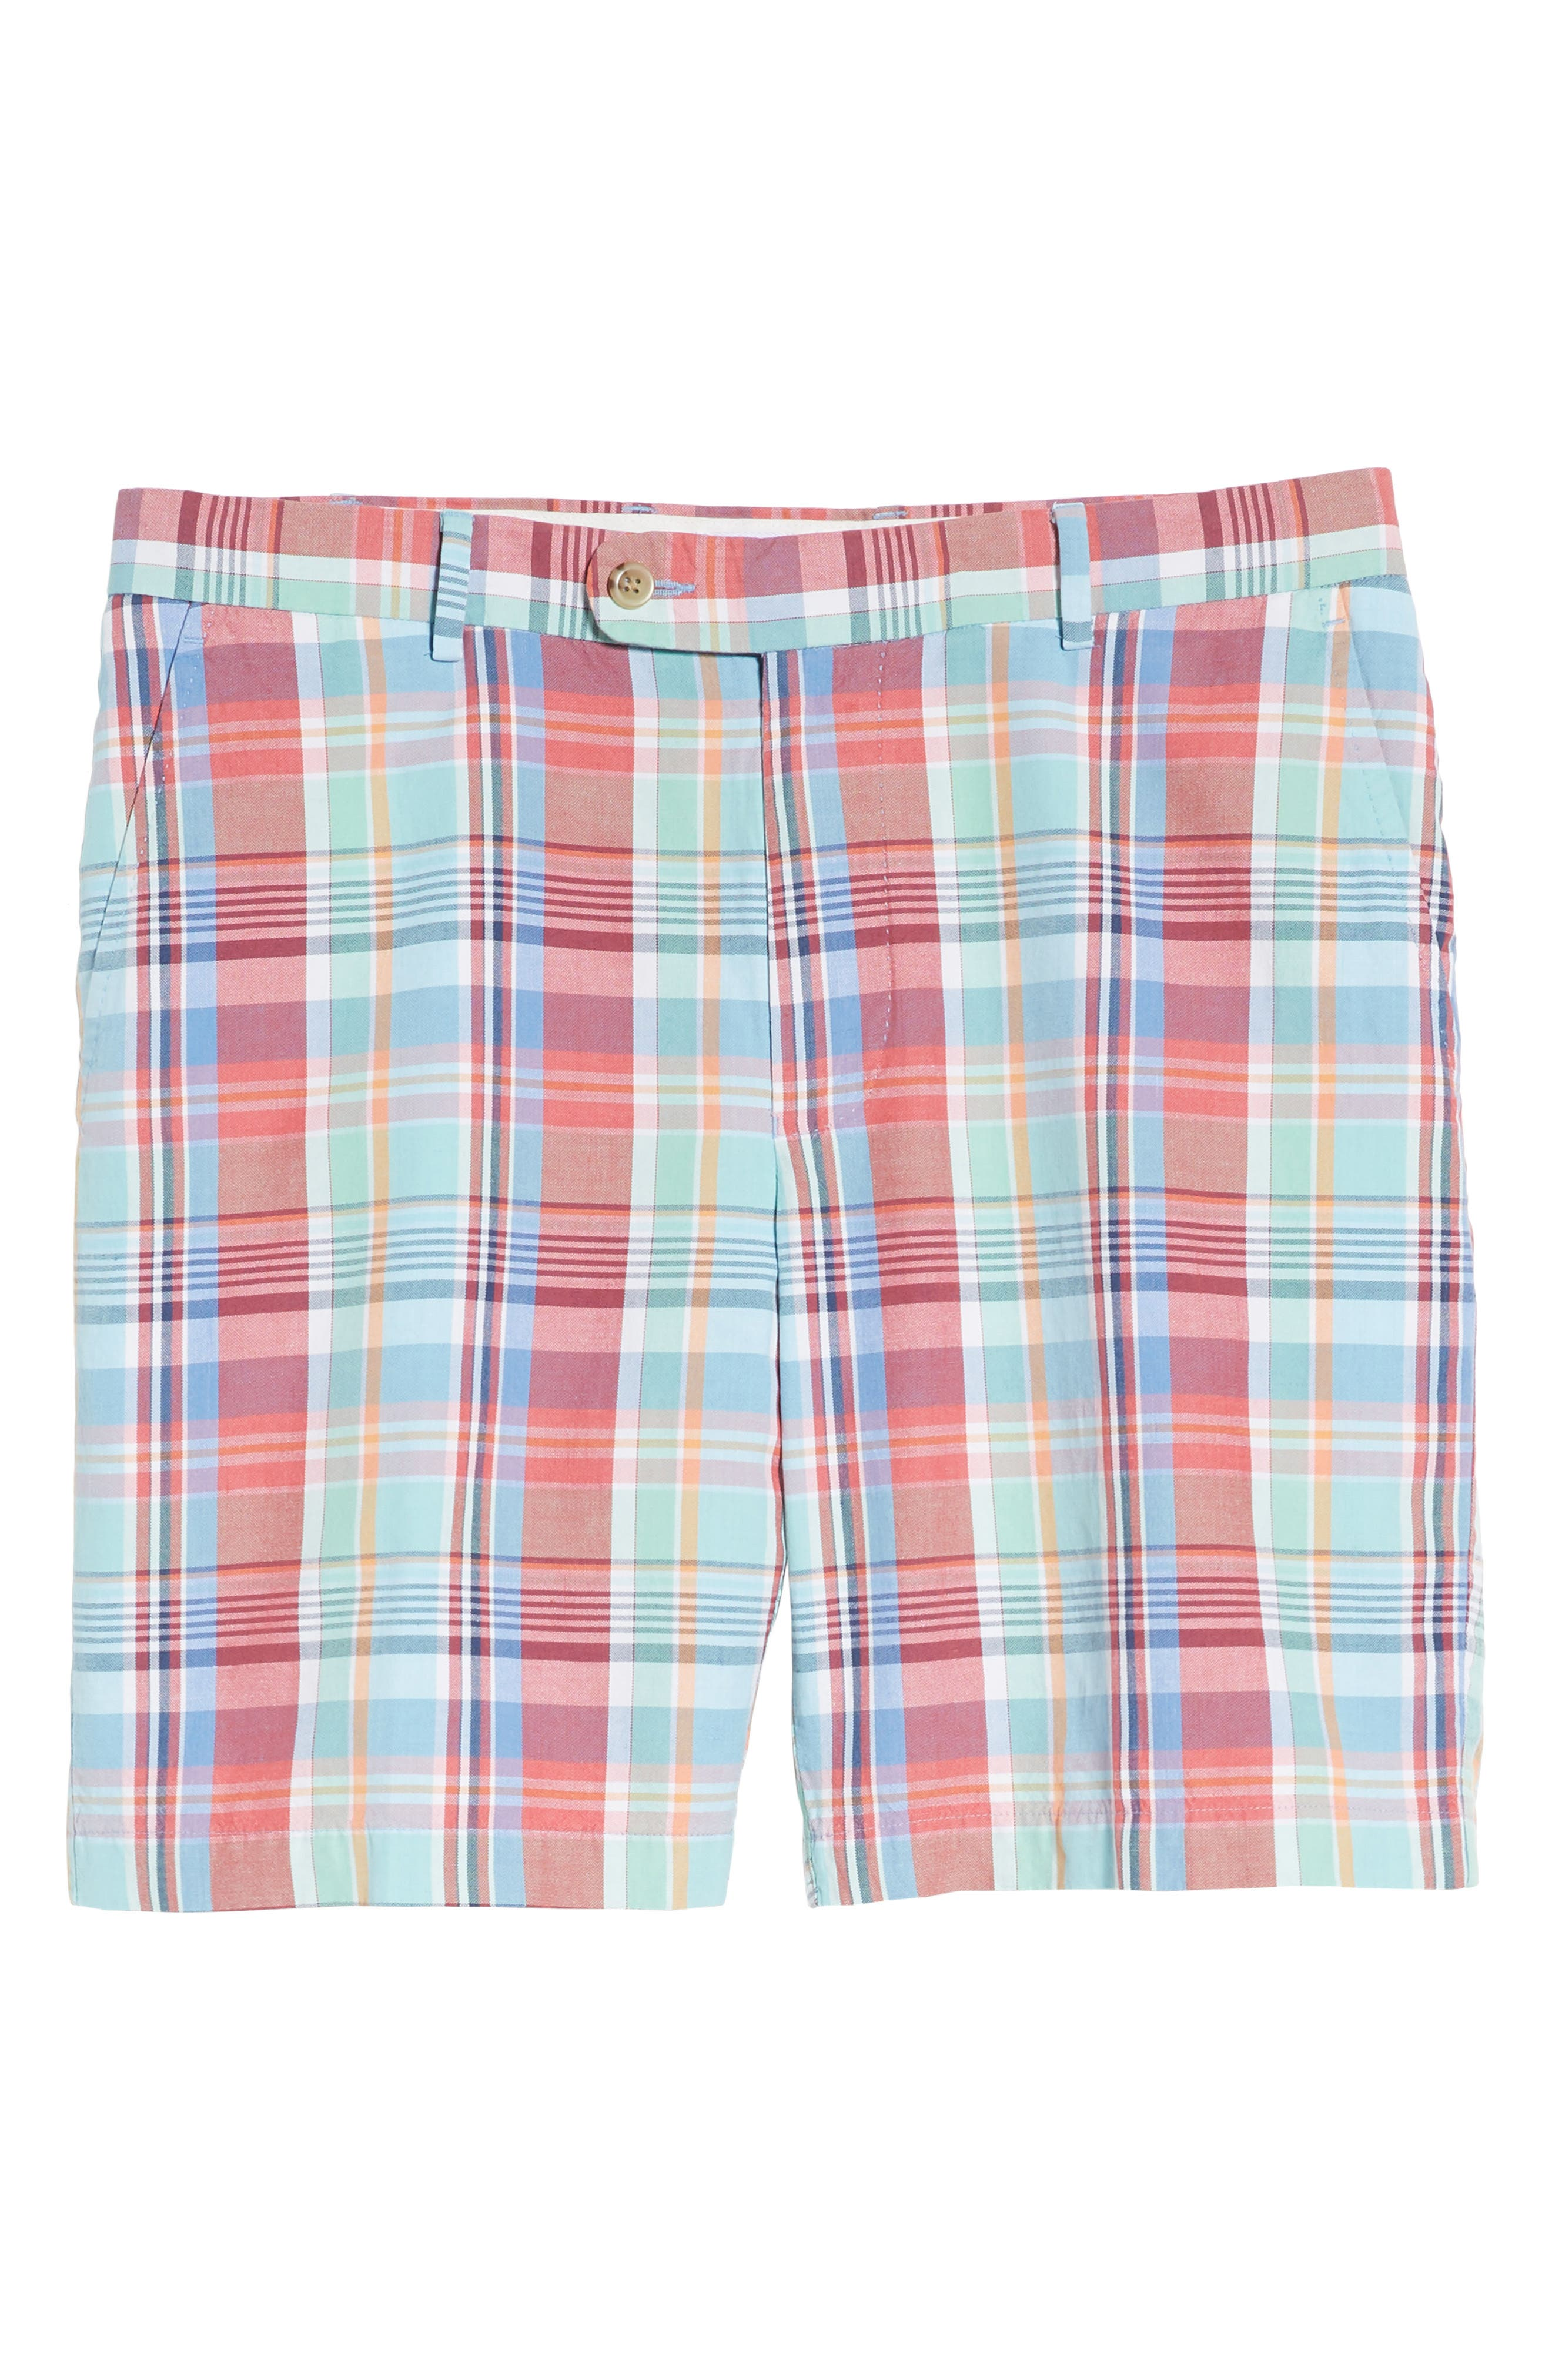 Seaside Madras Plaid Shorts,                             Alternate thumbnail 6, color,                             Cape Red